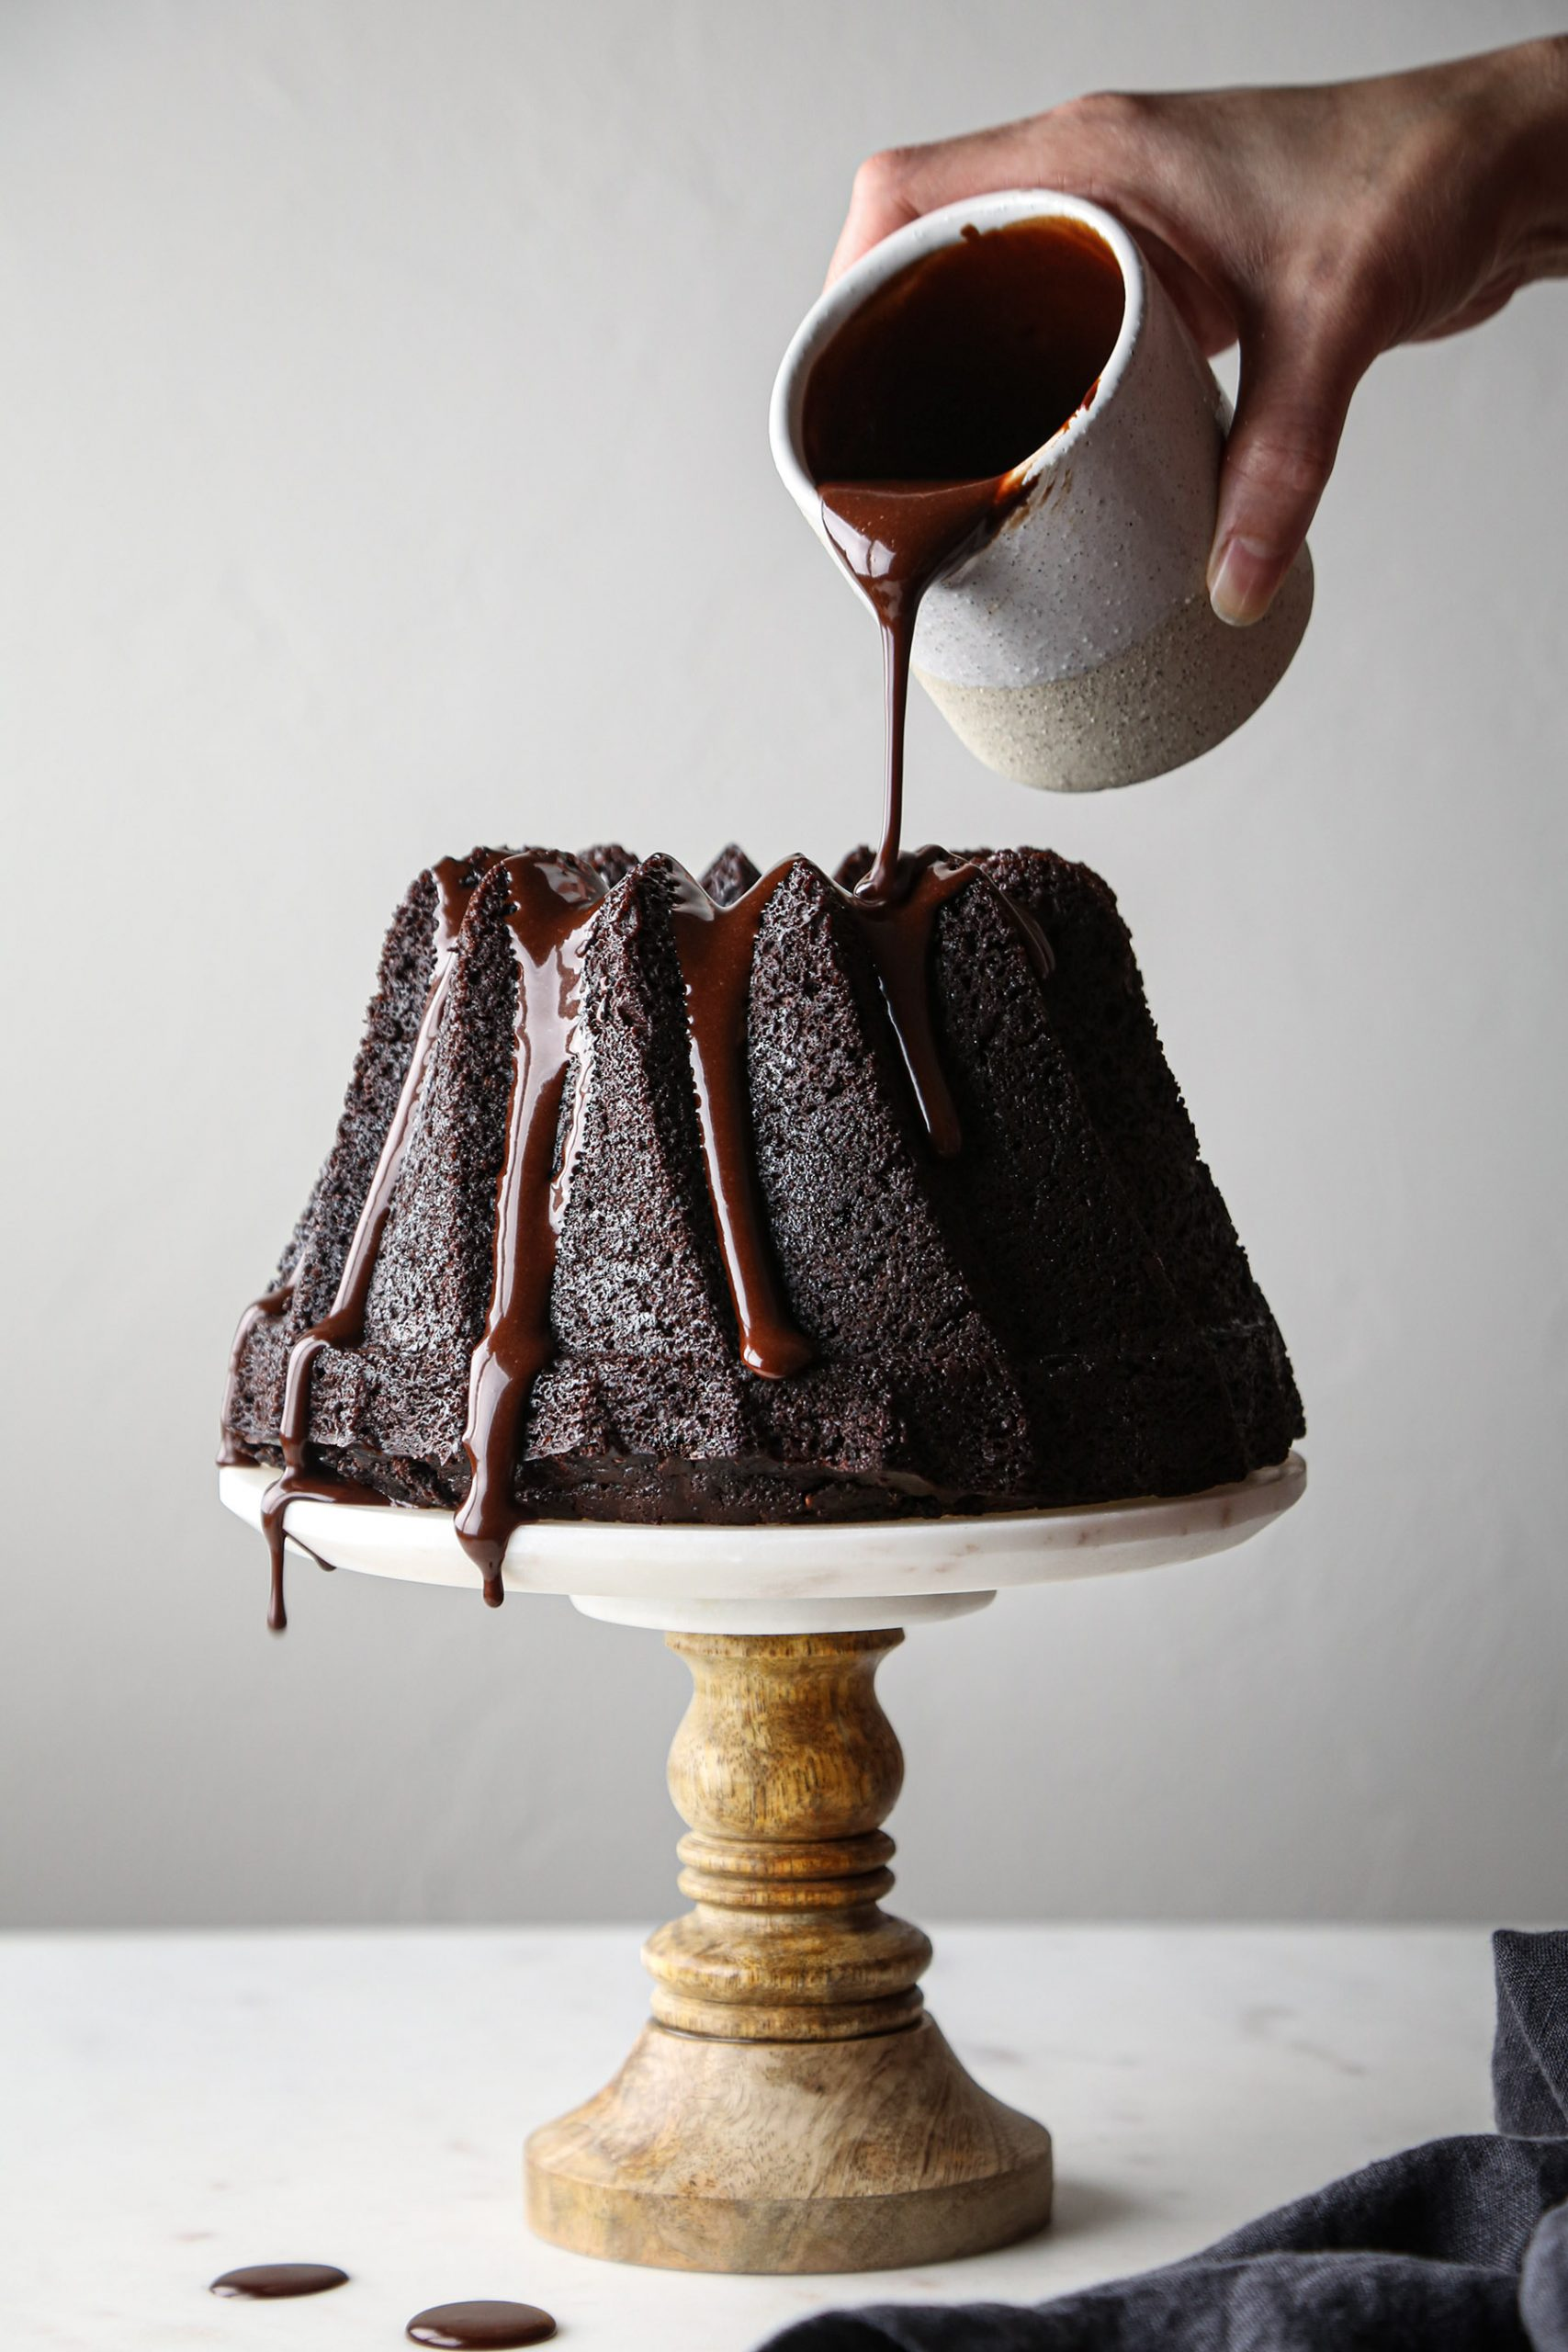 Simple Chocolate Bundt Cake | Vegan friendly with gluten free and refined sugar free options.